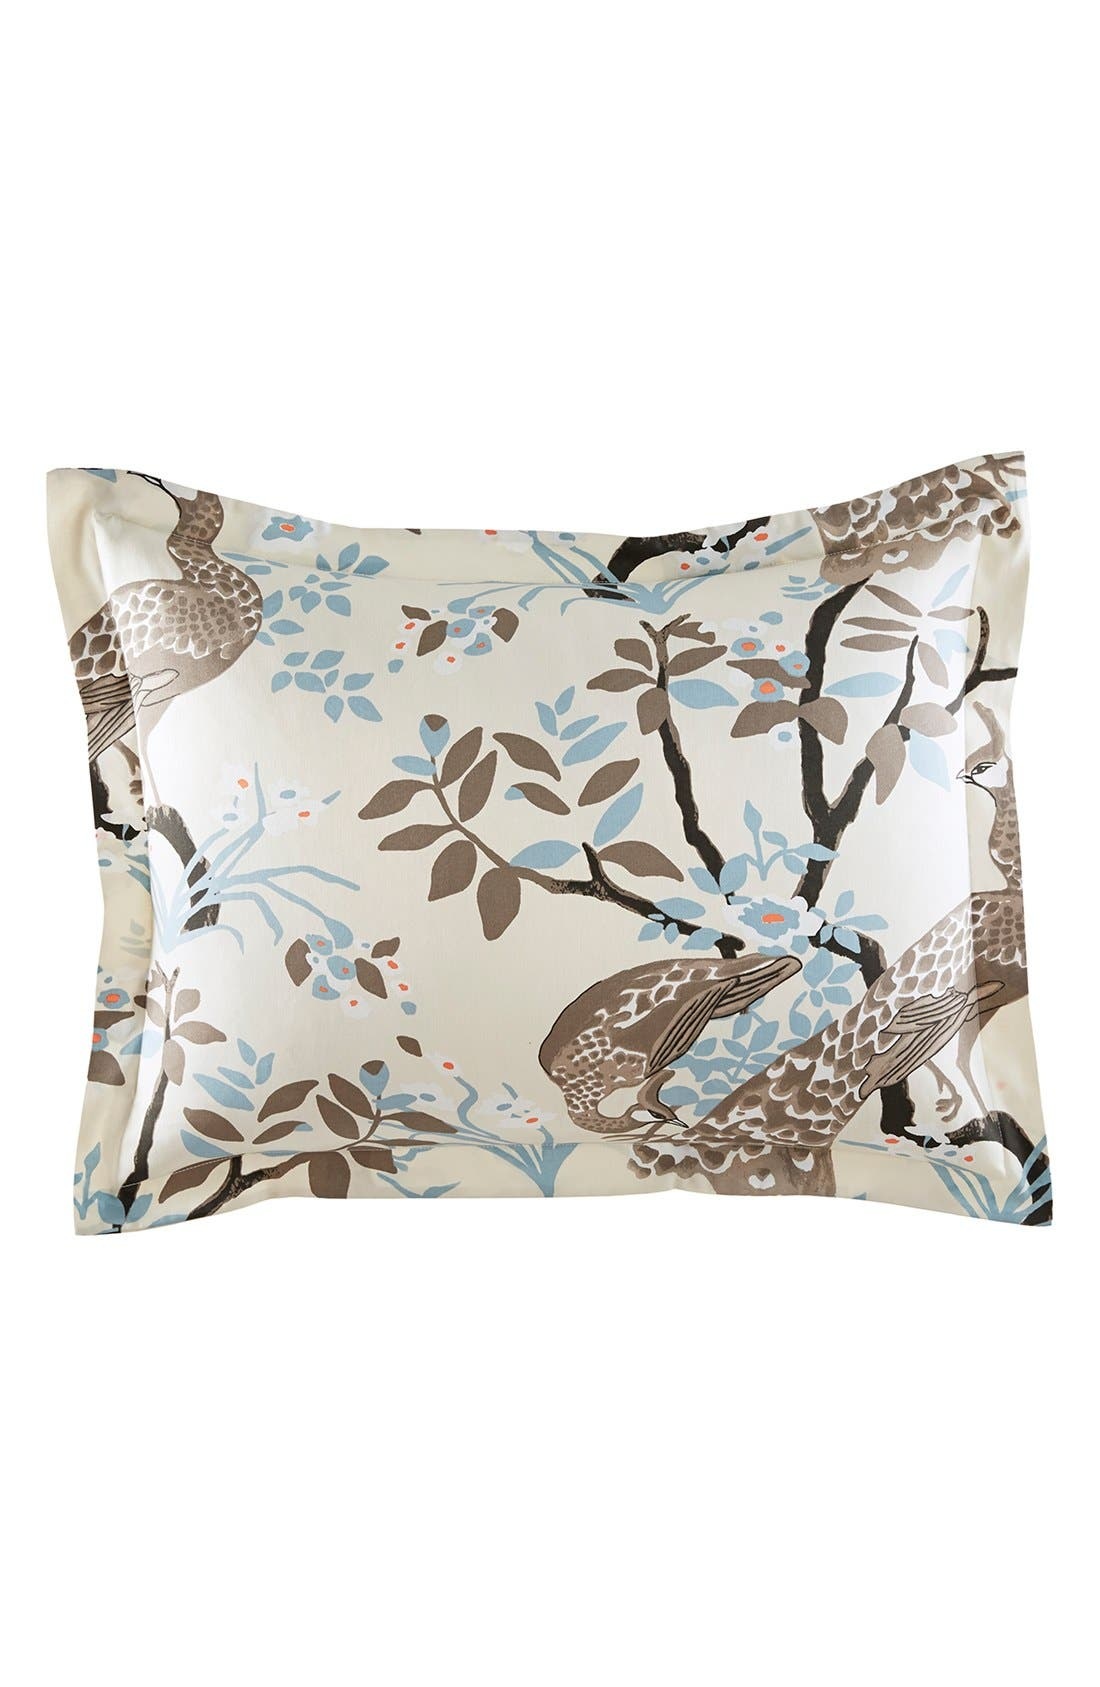 DwellStudio 'Peacock' Shams (Set of 2)